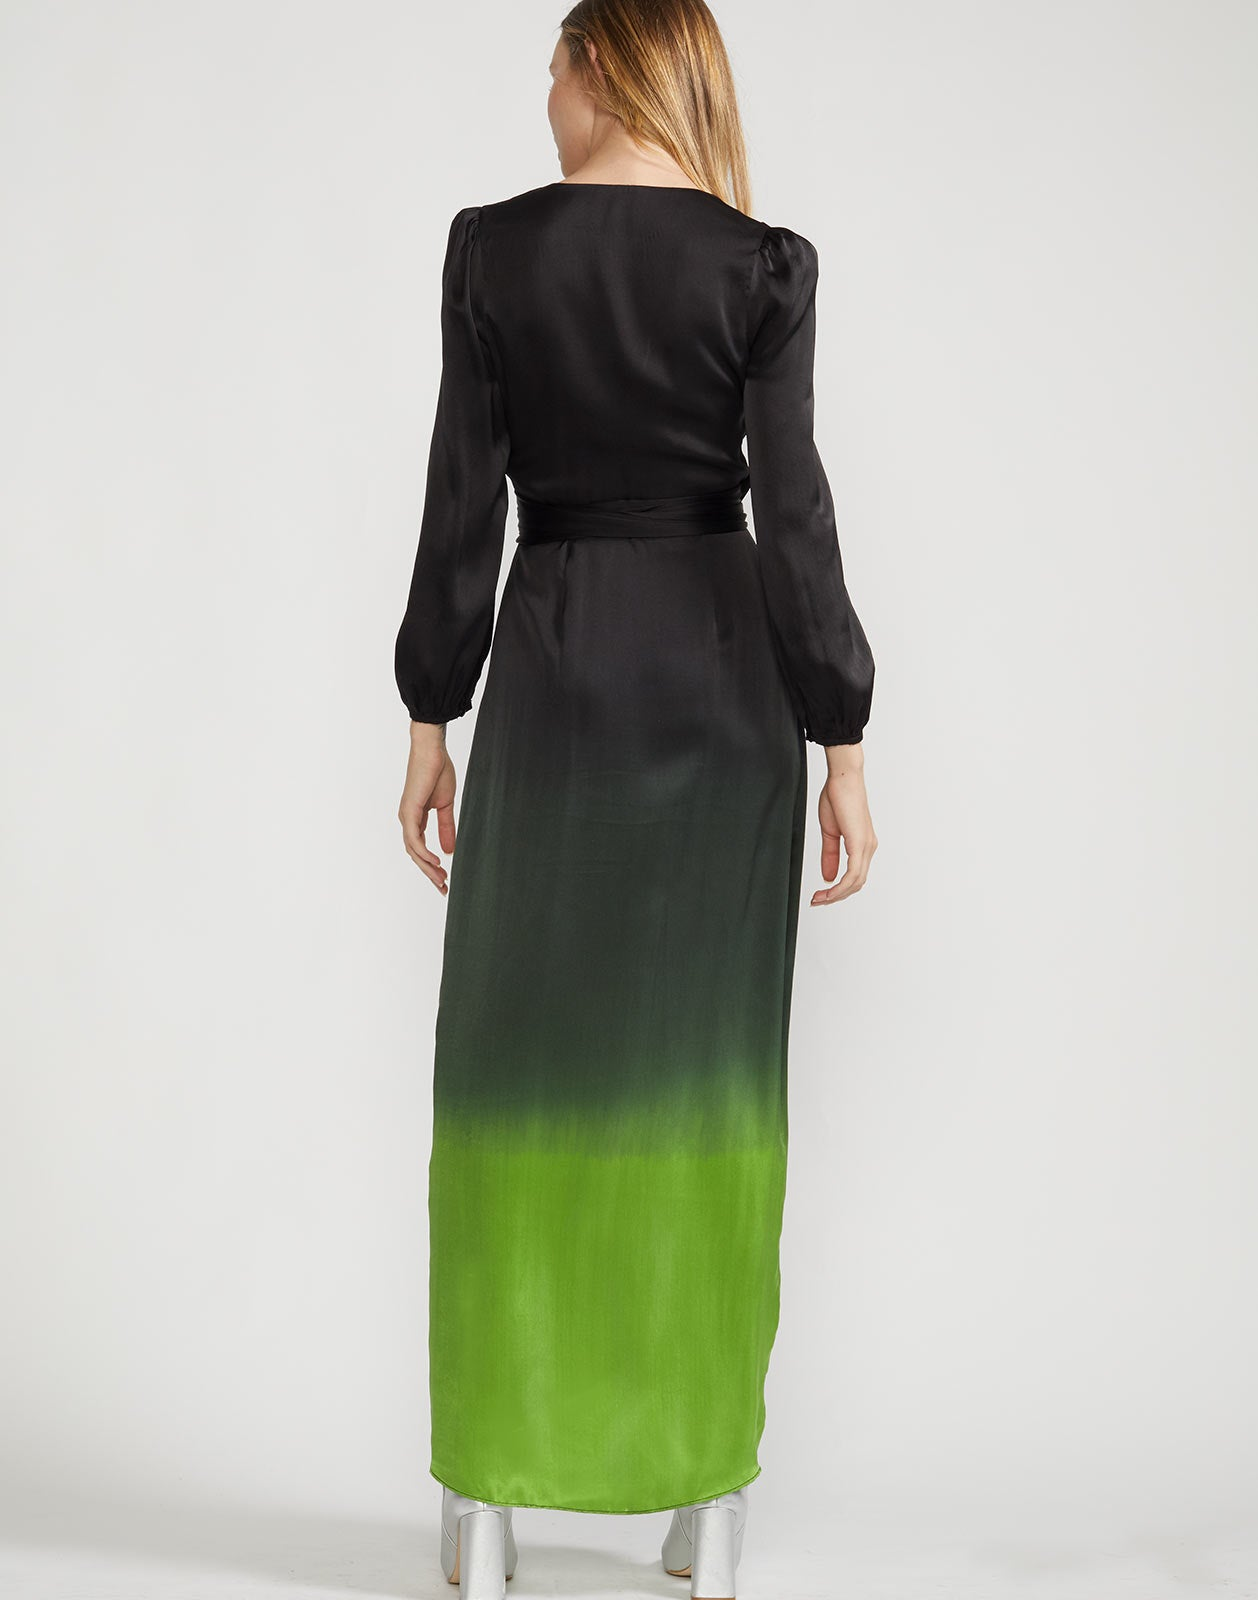 Back view of Felicity dress with black and green ombre and long sleeves